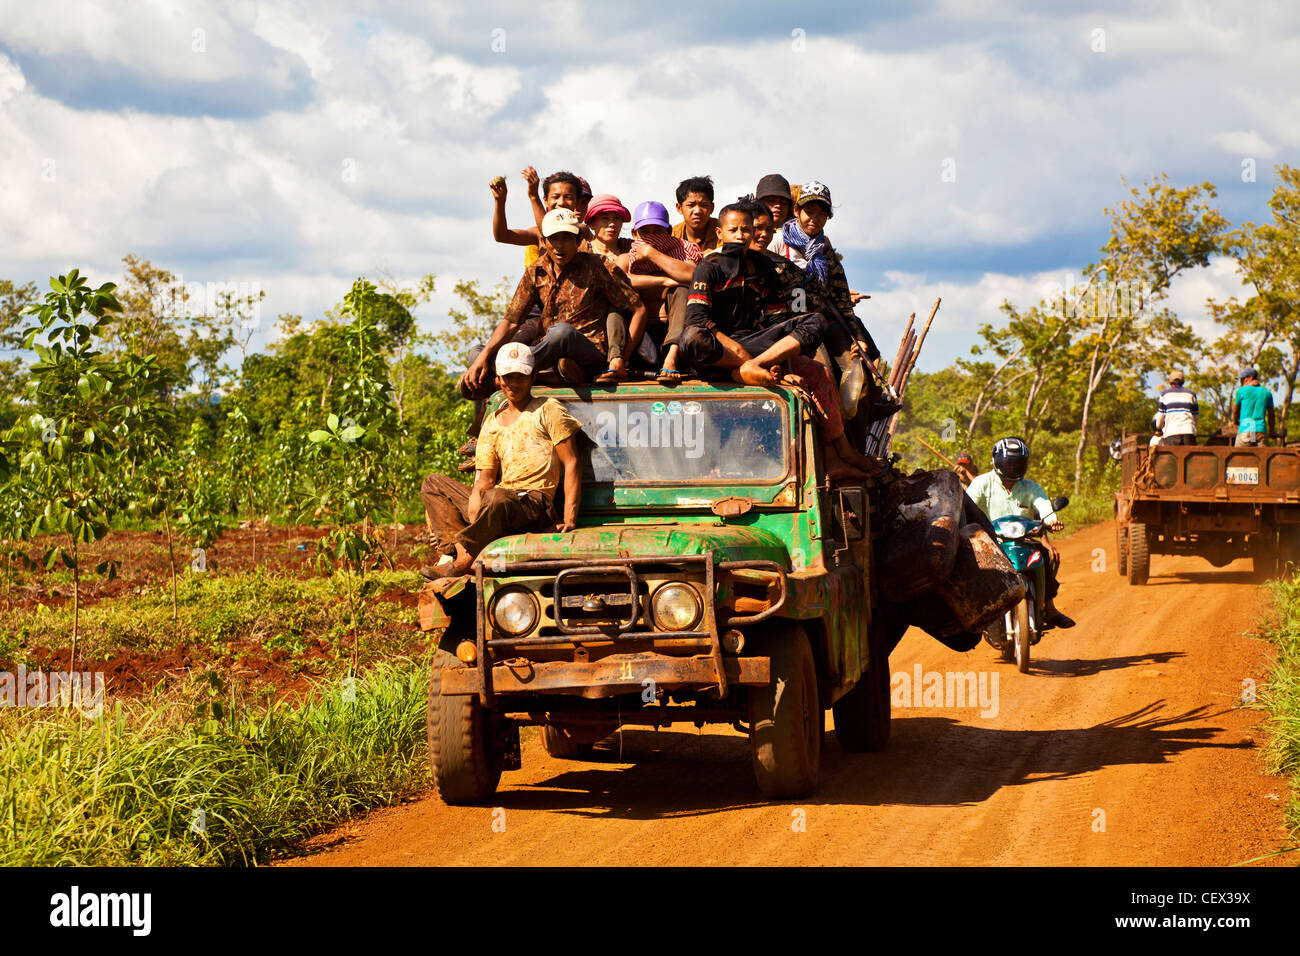 People crowded onto a truck on a dust track in a village near Banlung, Cambodia - Stock Image